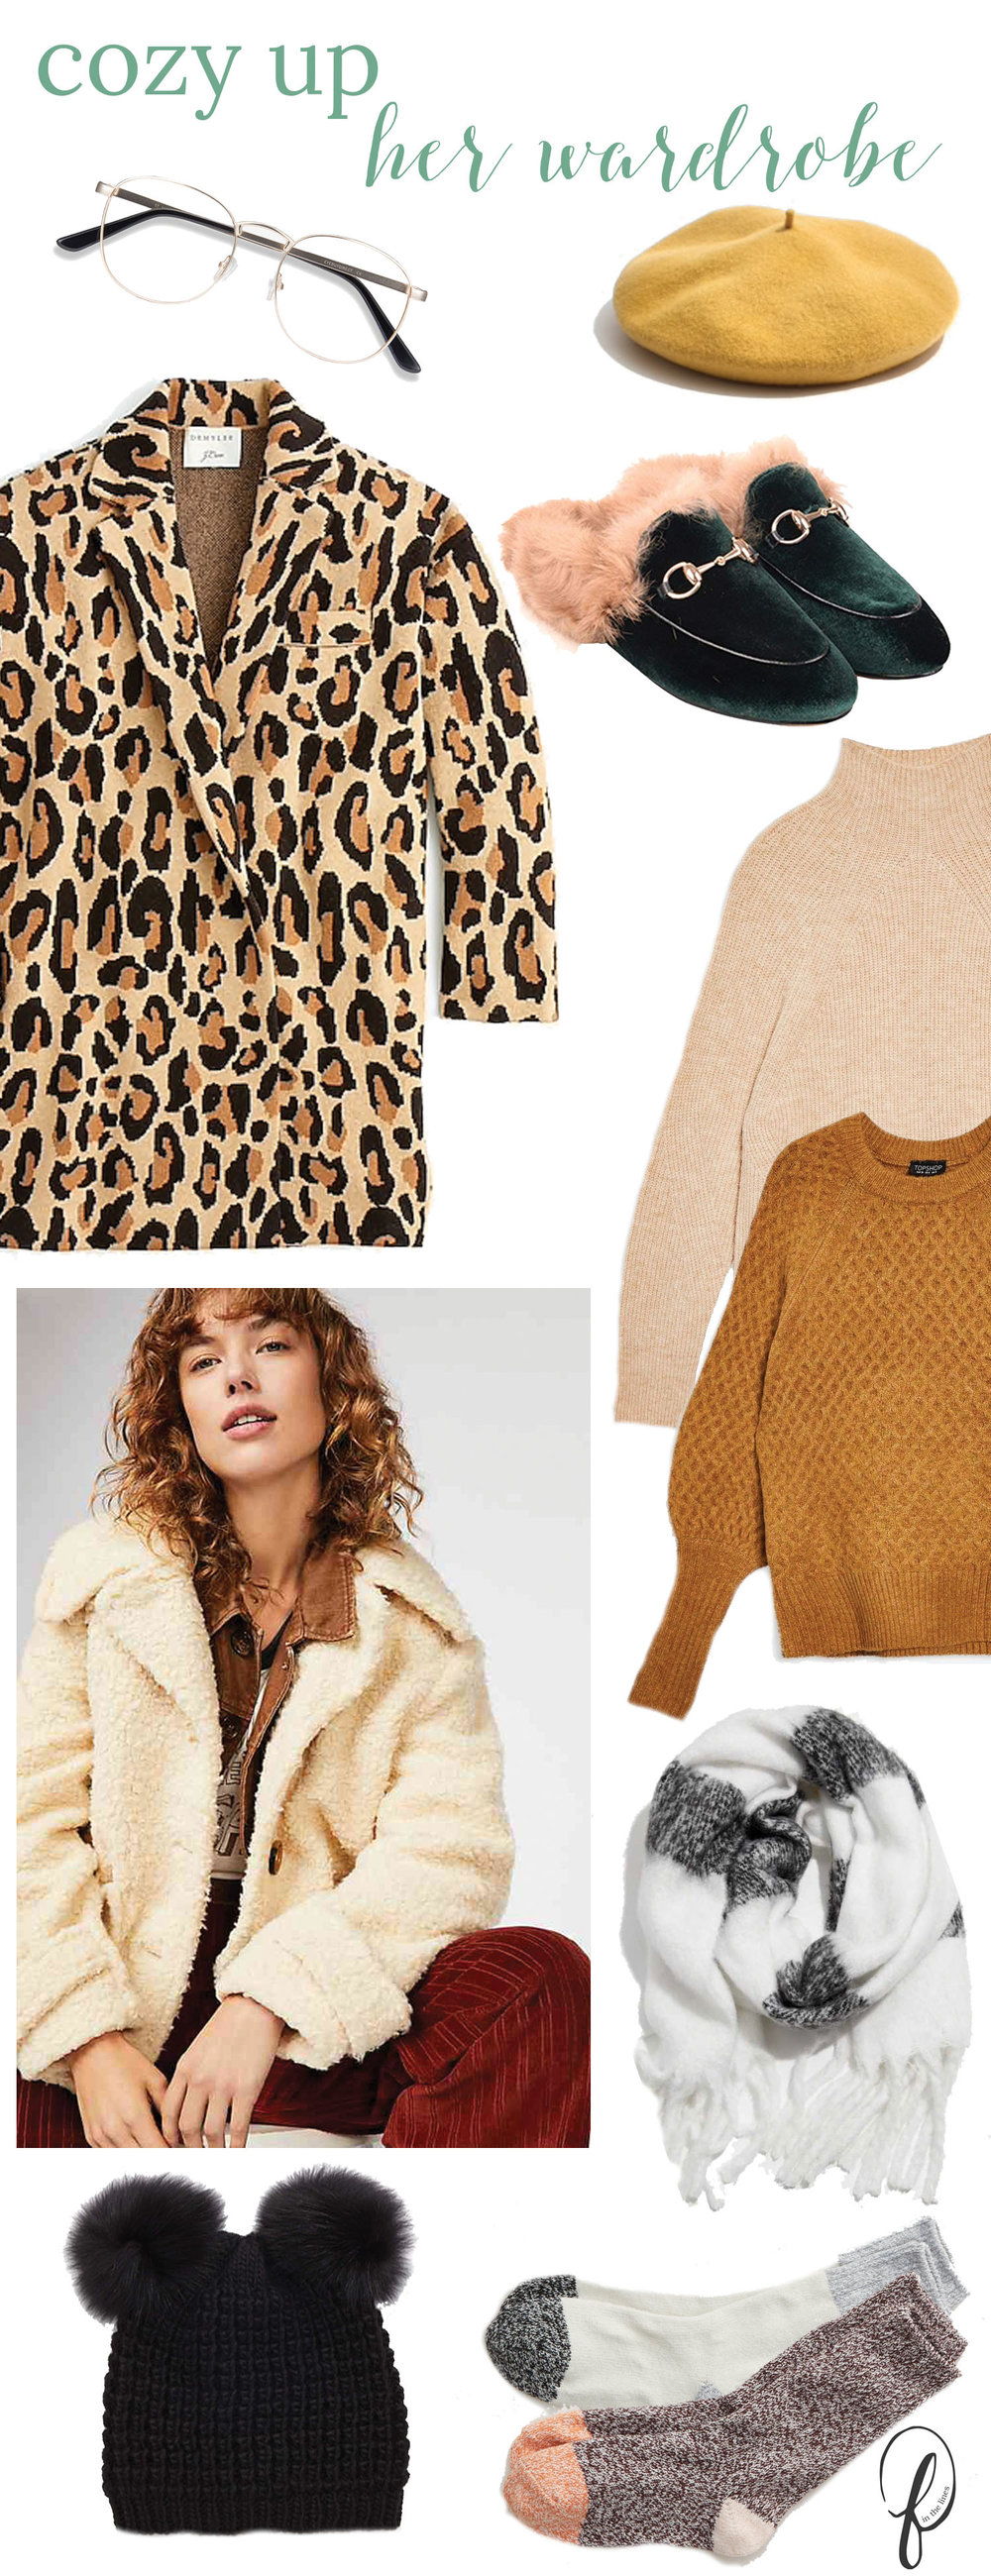 cozy-up-wardrobe-hers.jpg